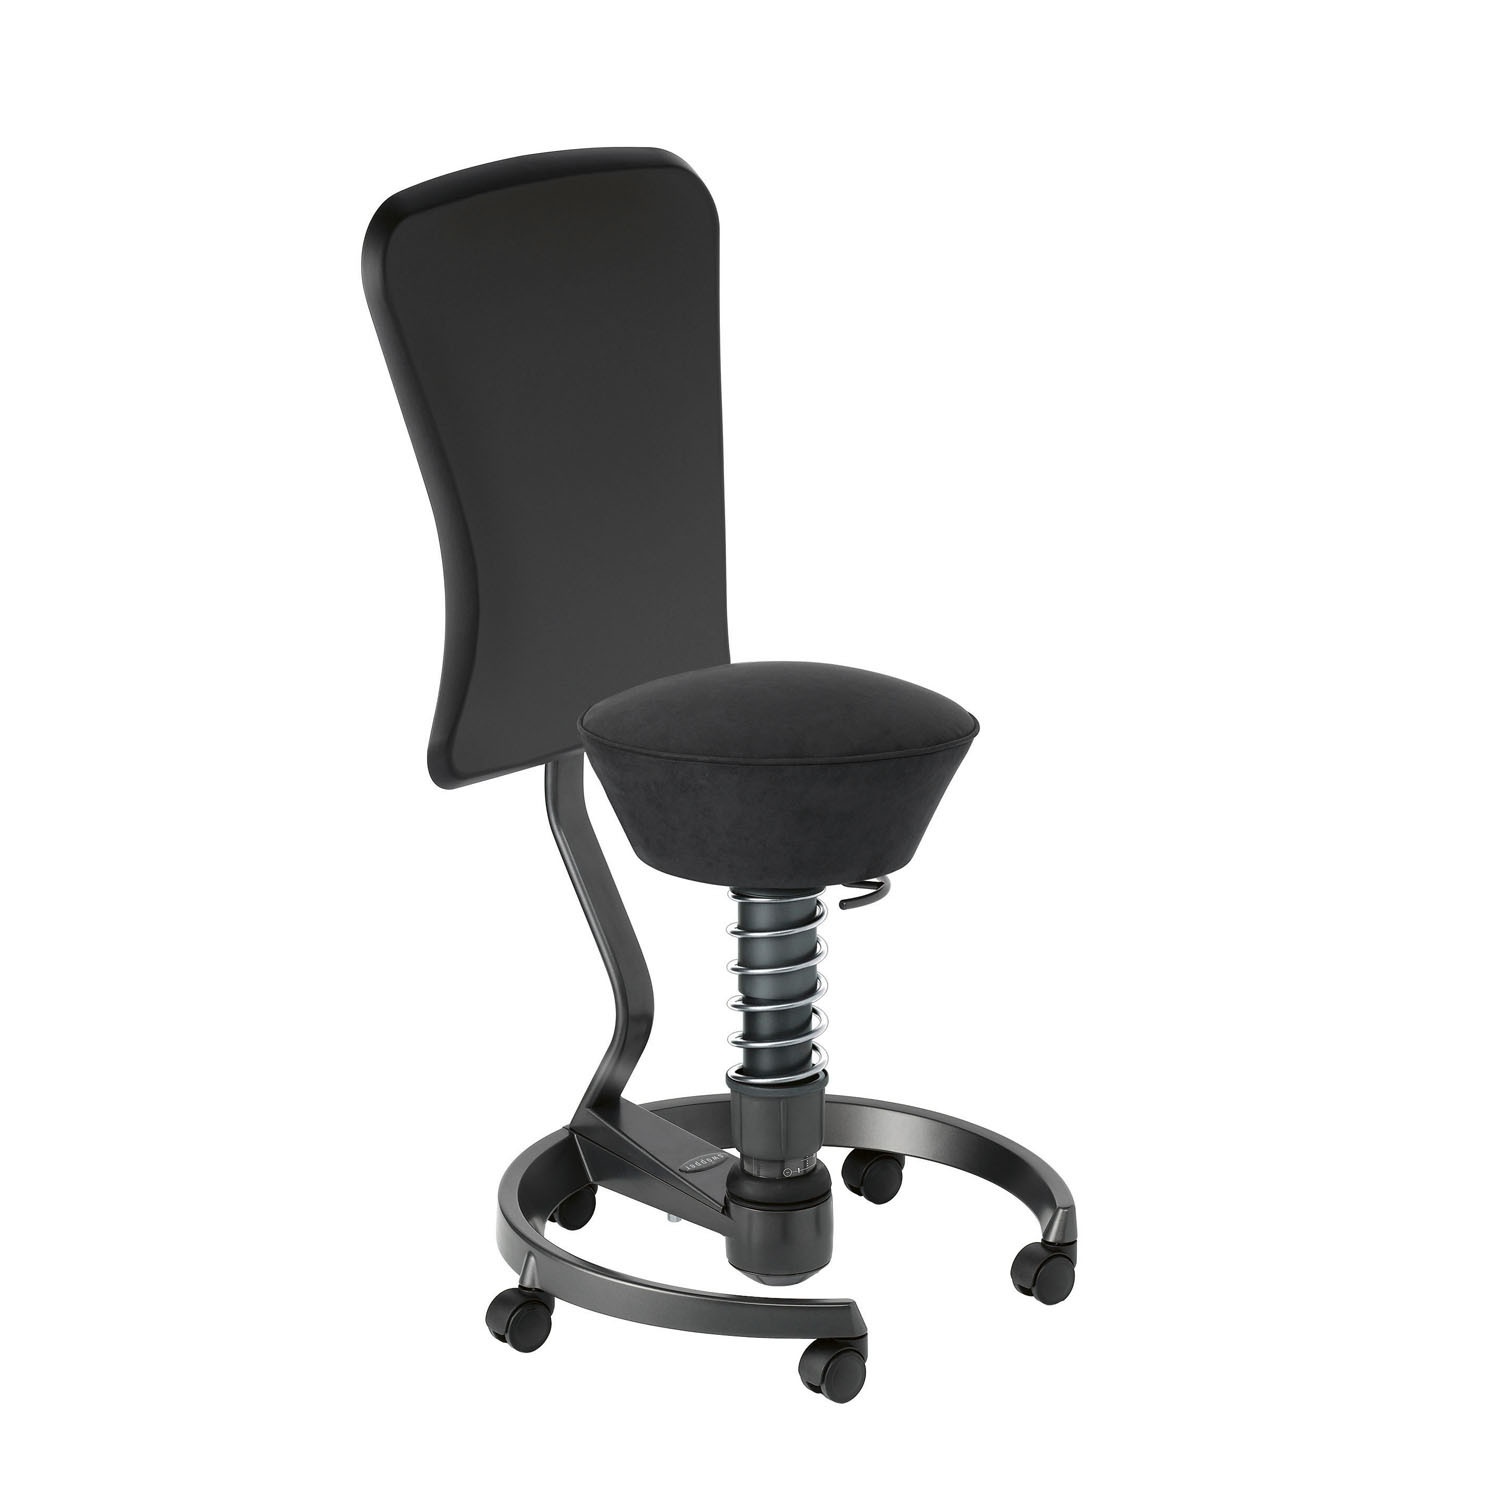 Swopper Work 3D Active Office Swivel Chair